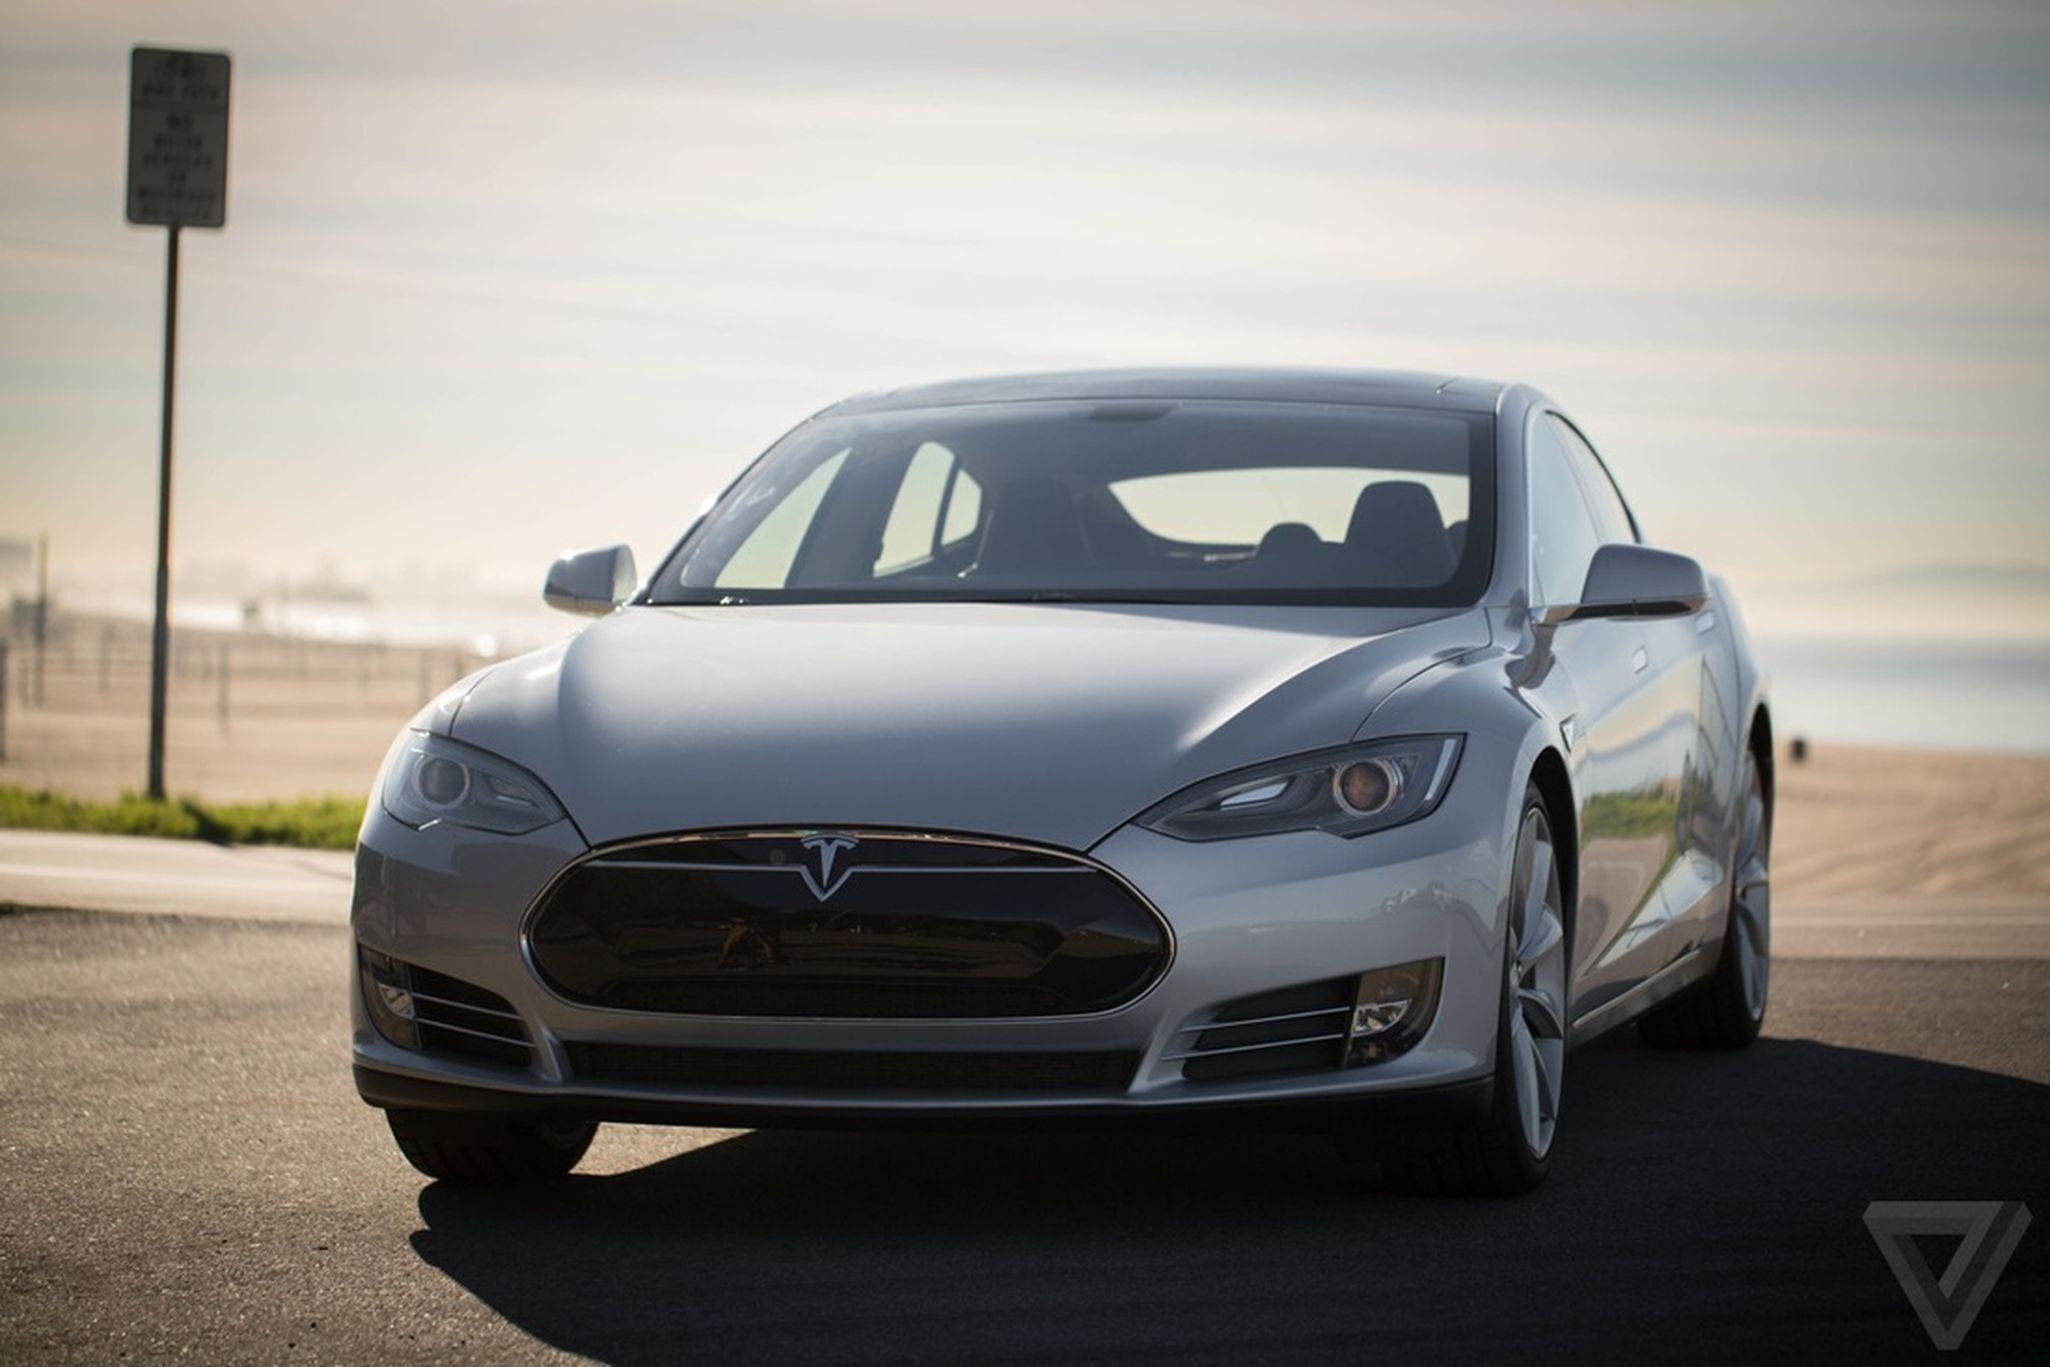 Going the distance: driving the Tesla Model S in the real